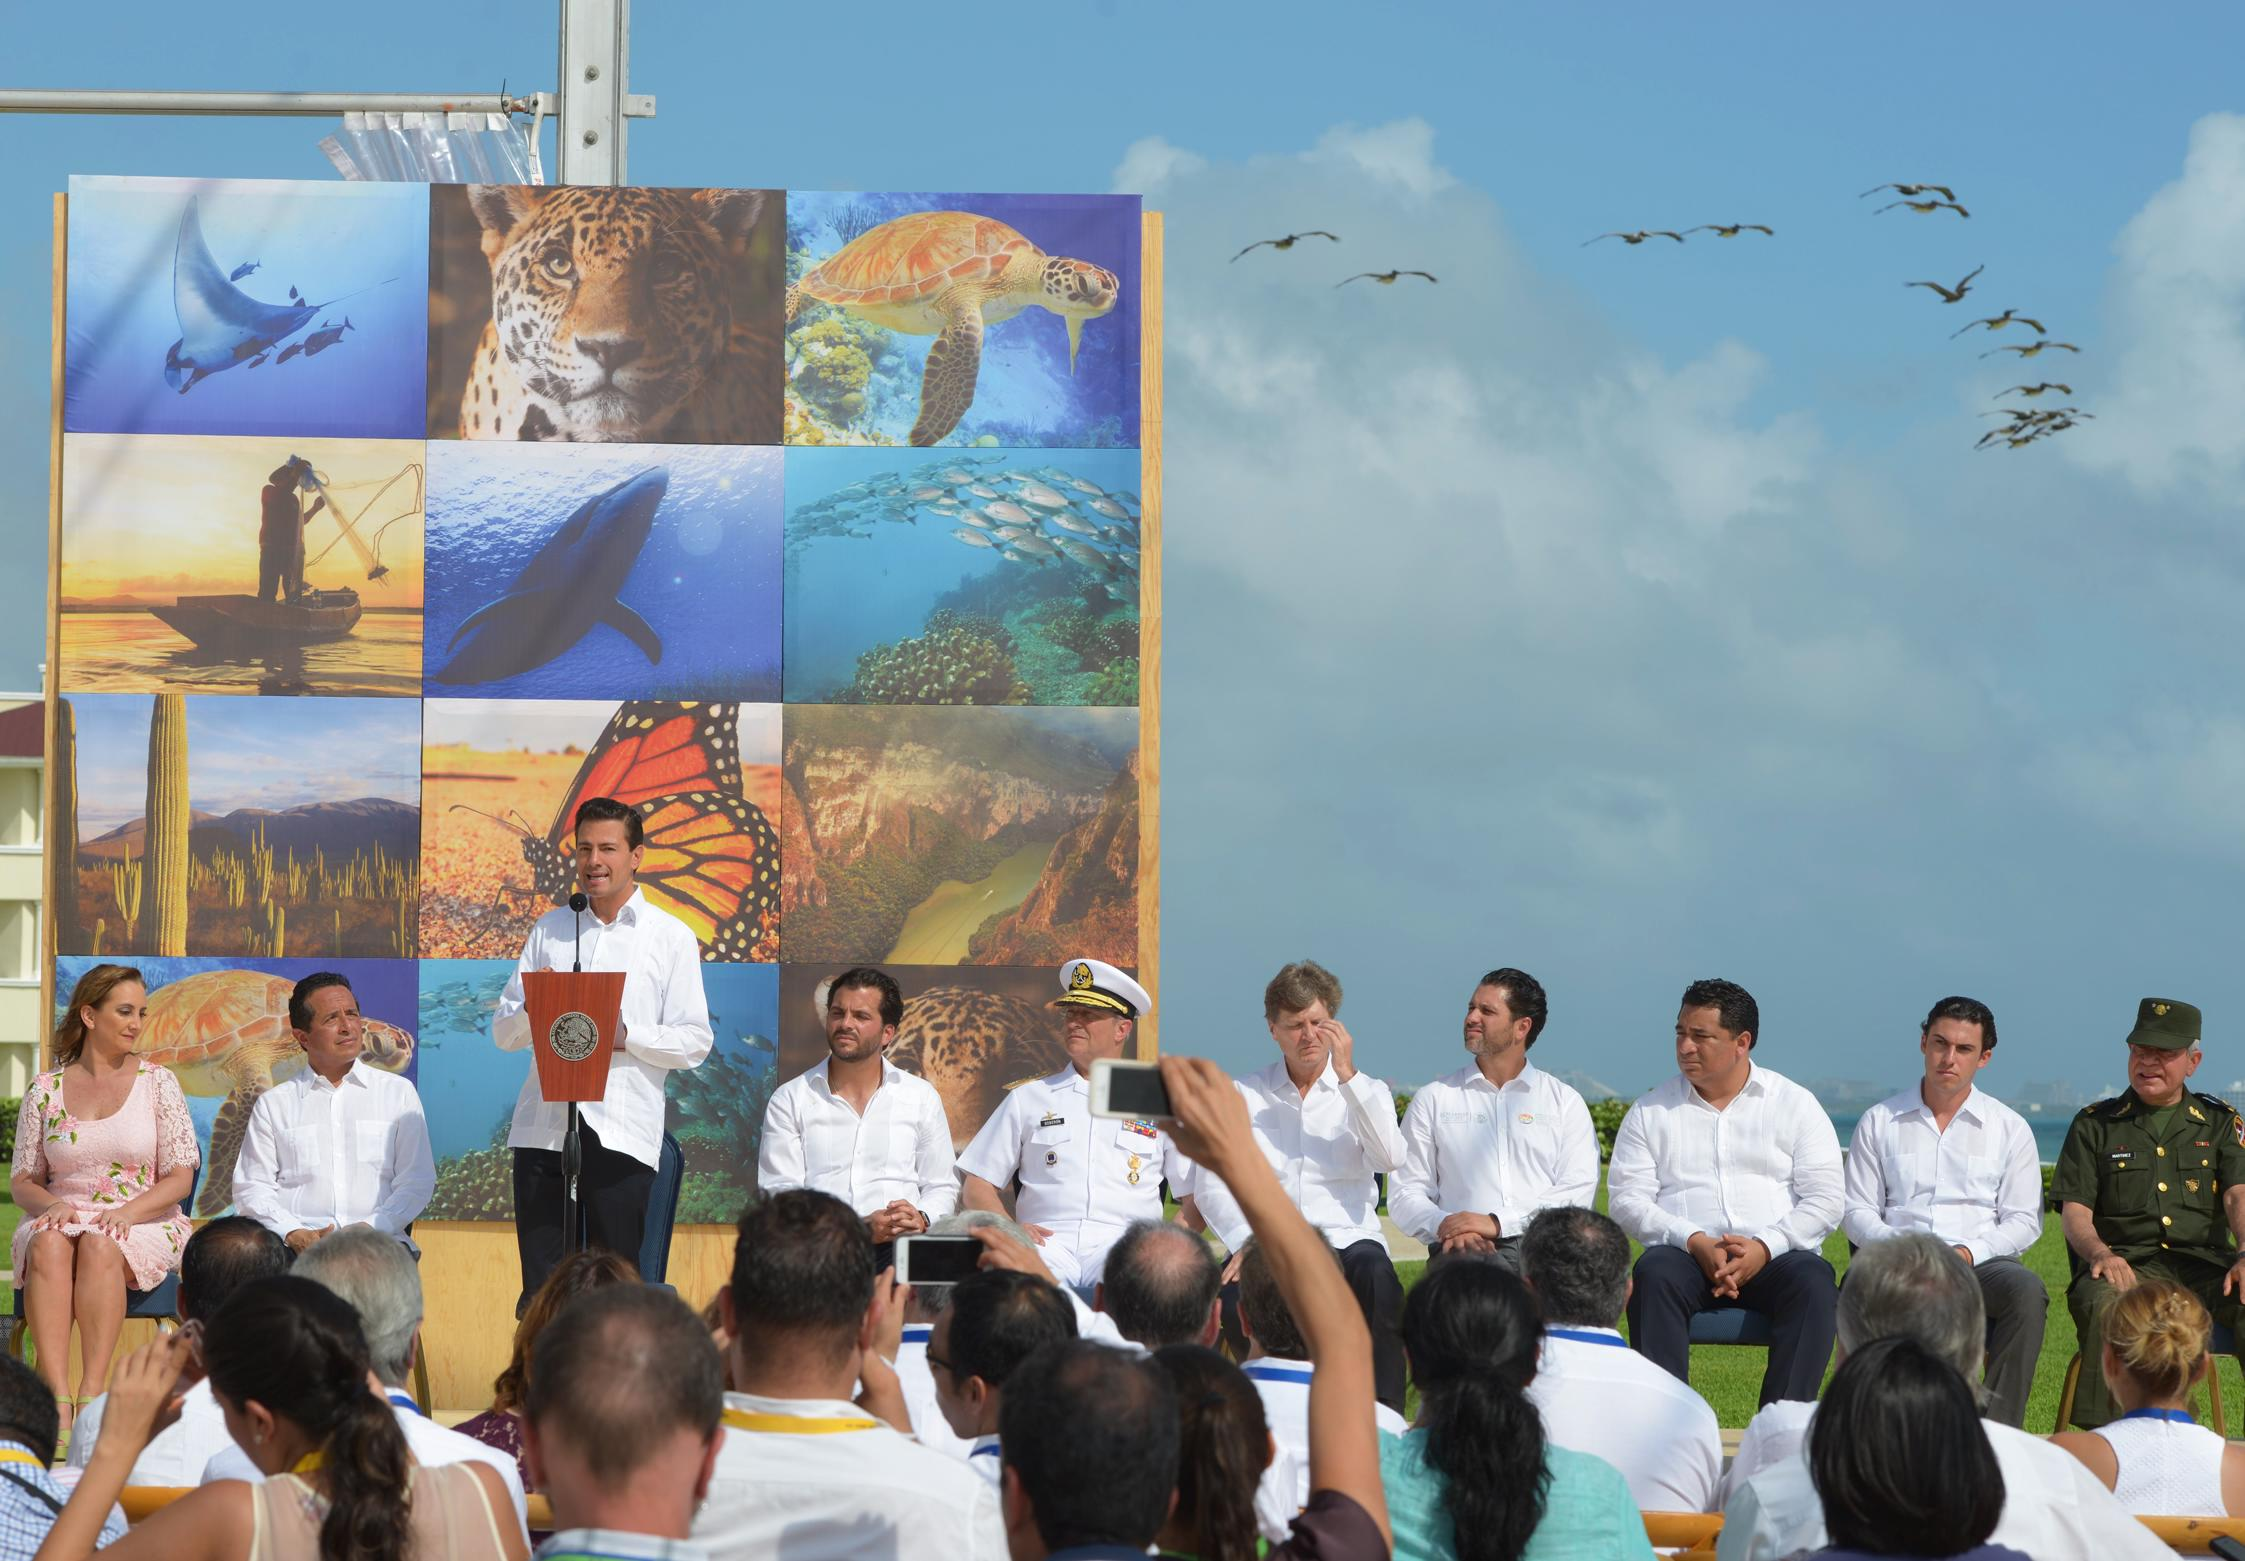 The president explained that the zone designated as a protected area today comprises 65 million hectares.